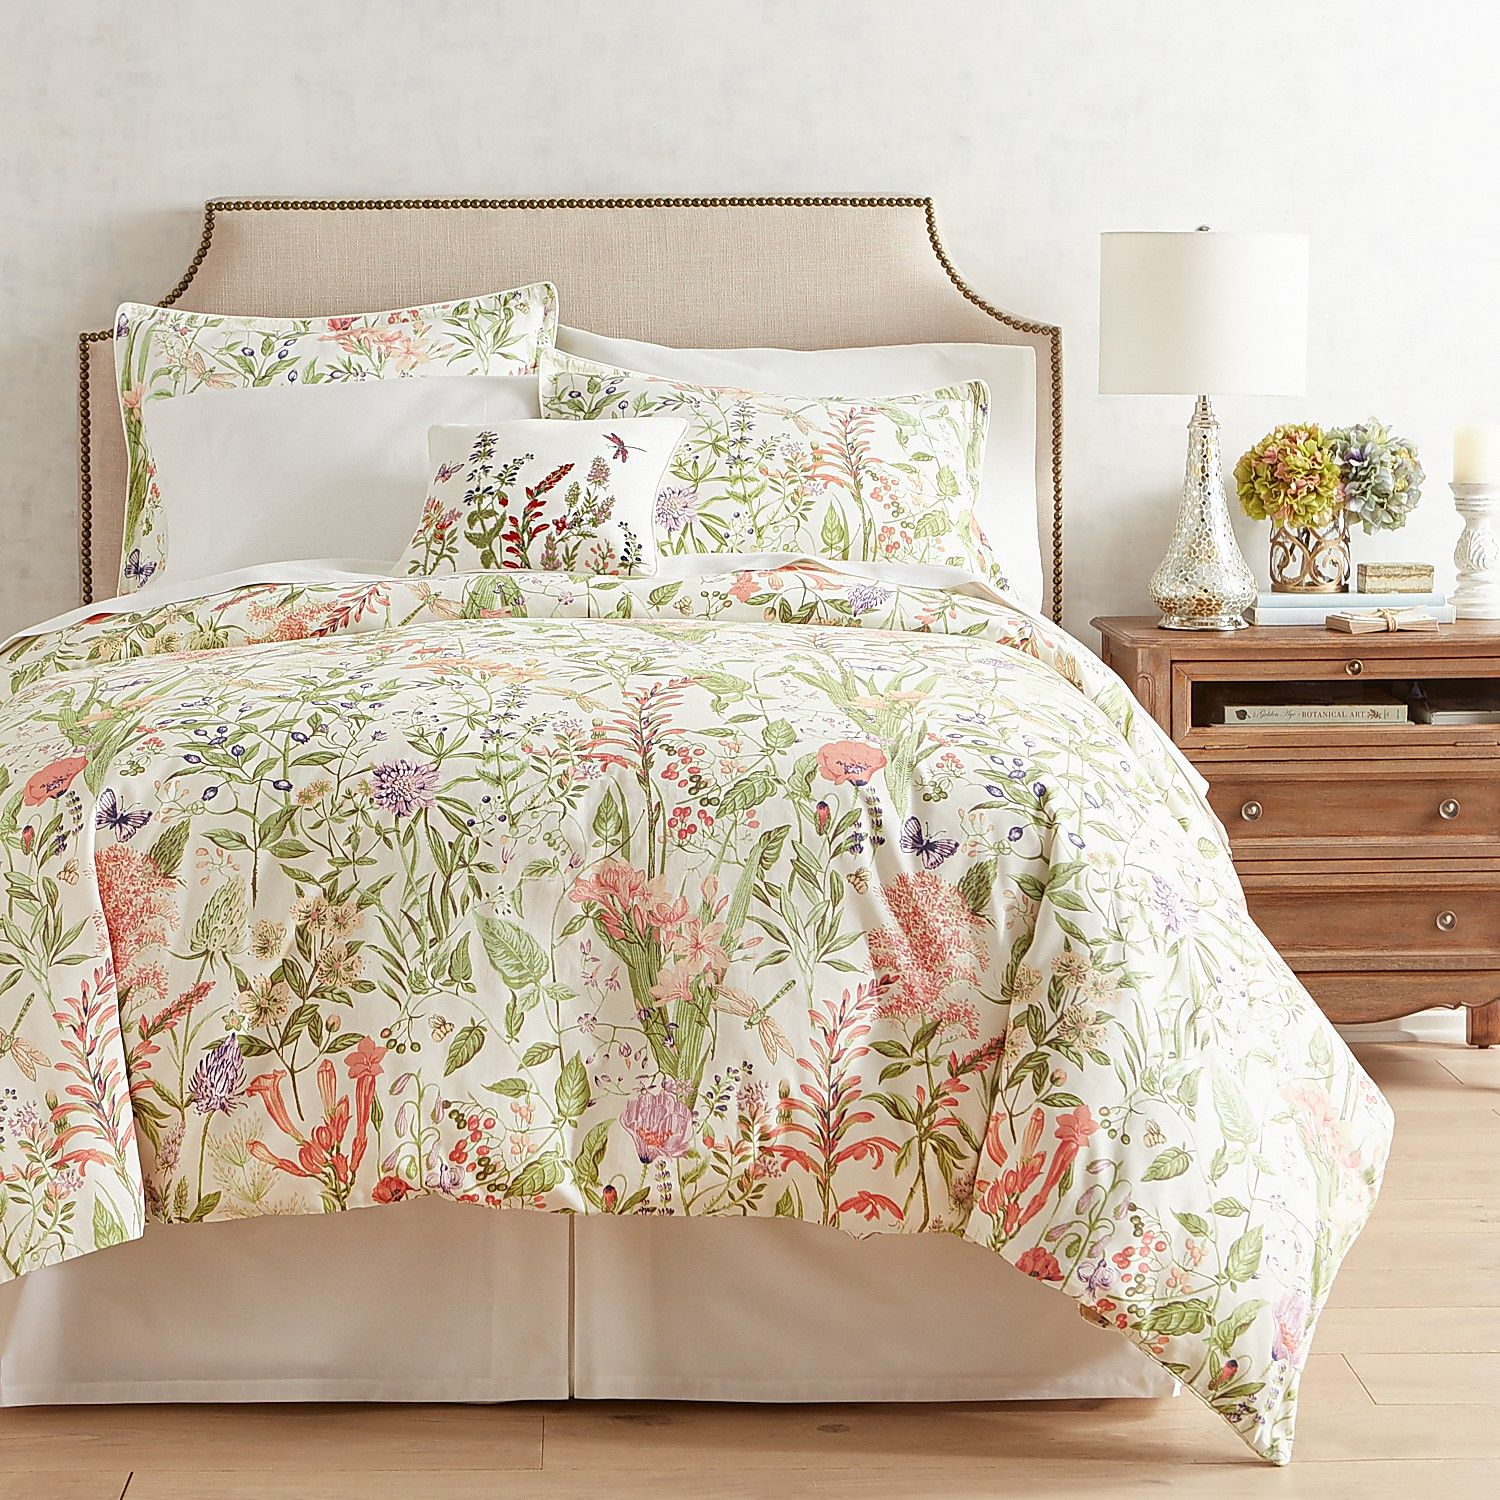 Toile Bedding And Curtains